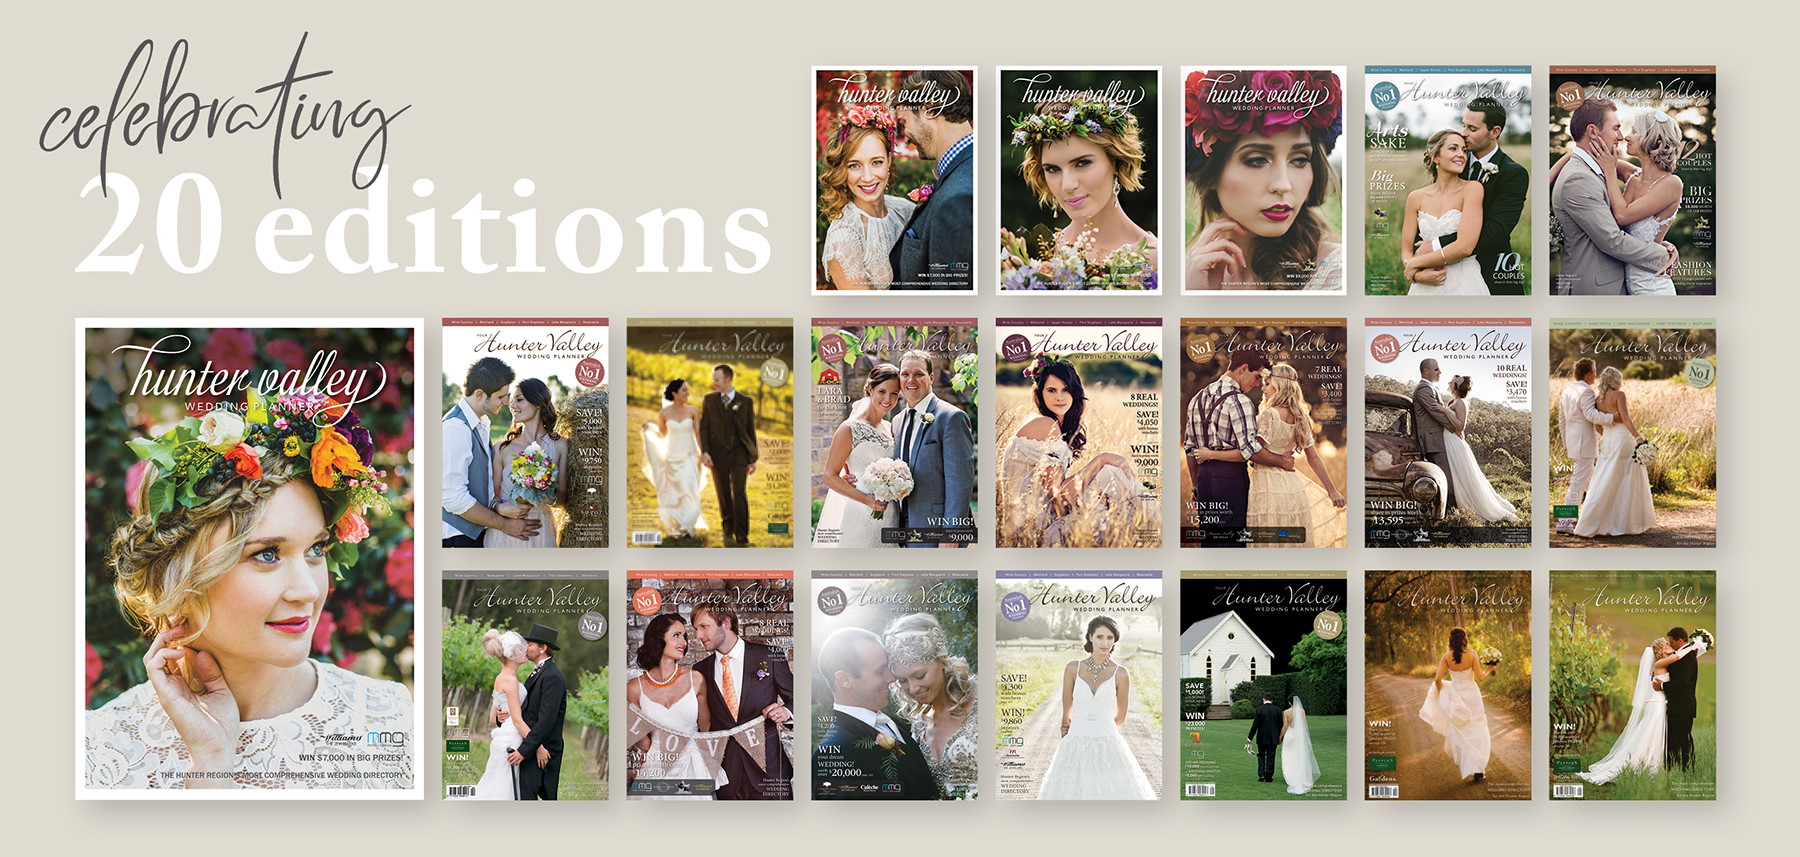 Celebrating 20 Editions - with 21st Edition now on sale!